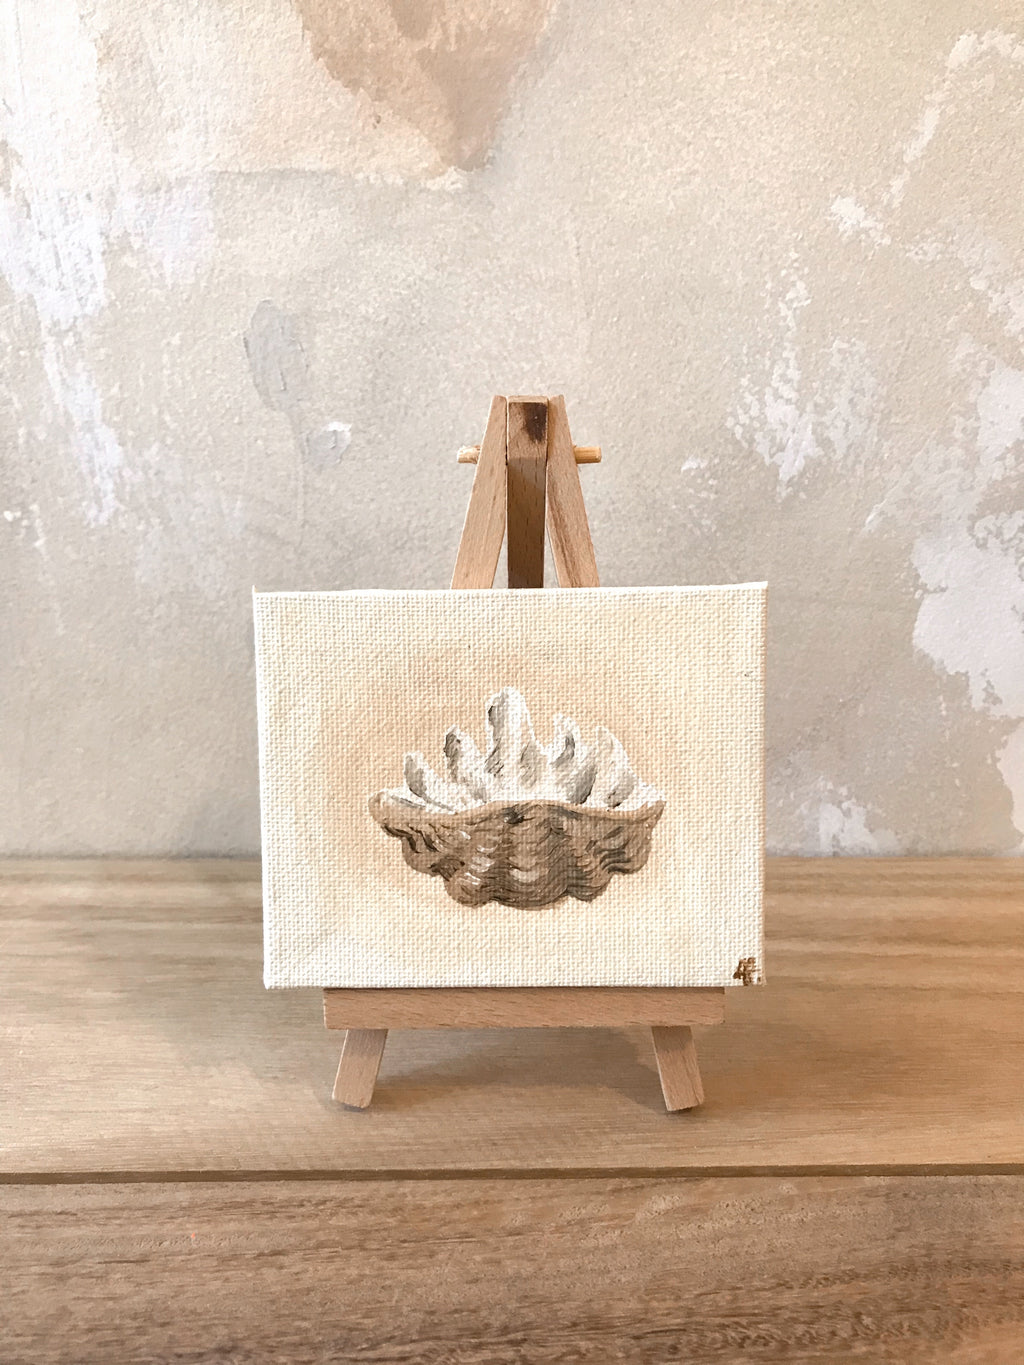 Resort Clam Shell 8cm + easel Original Artwork